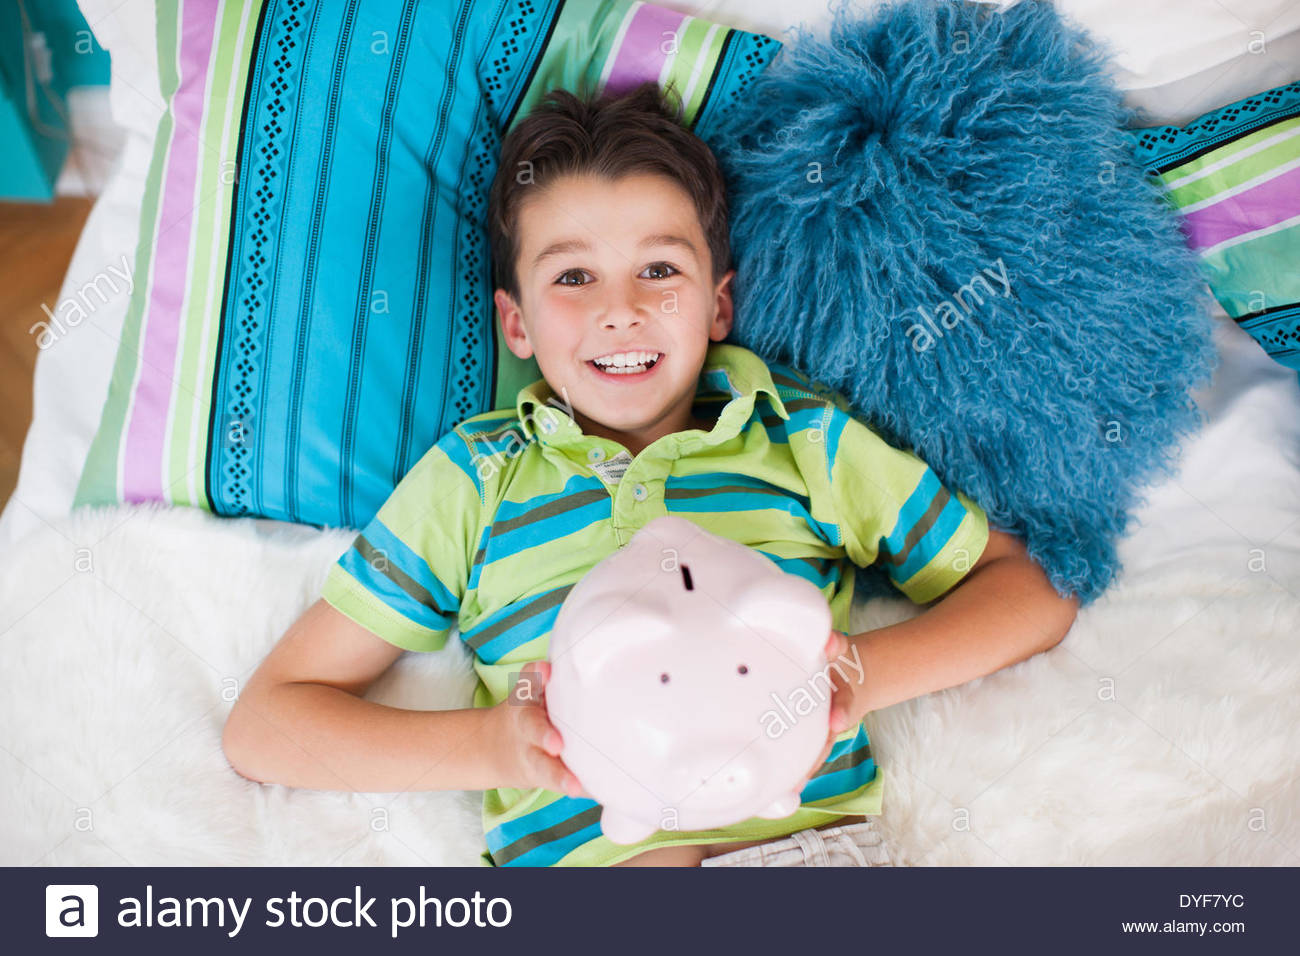 Boy laying in bed with piggy bank Photo Stock